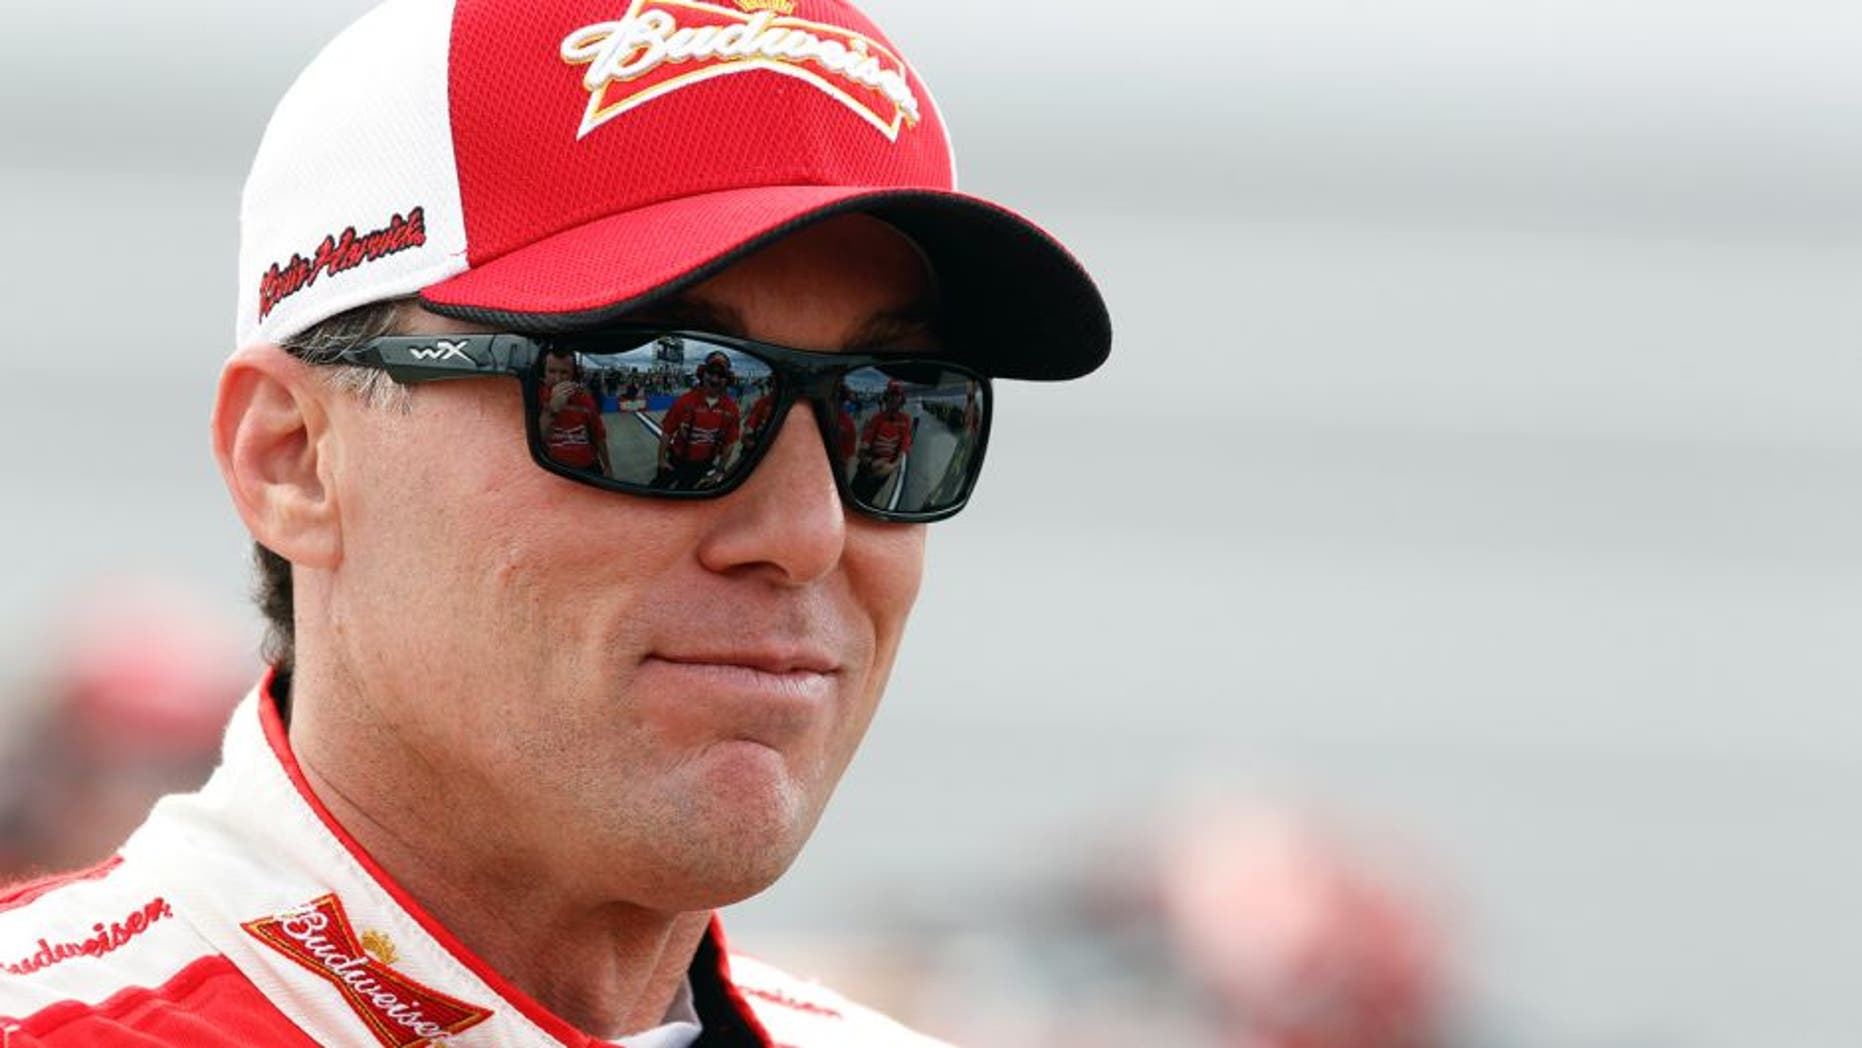 TALLADEGA, AL - OCTOBER 24: Kevin Harvick, driver of the #4 Budweiser/Jimmy John's Chevrolet, stands on the grid during qualifying for the NASCAR Sprint Cup Series CampingWorld.com 500 at Talladega Superspeedway on October 24, 2015 in Talladega, Alabama. (Photo by Brian Lawdermilk/Getty Images)